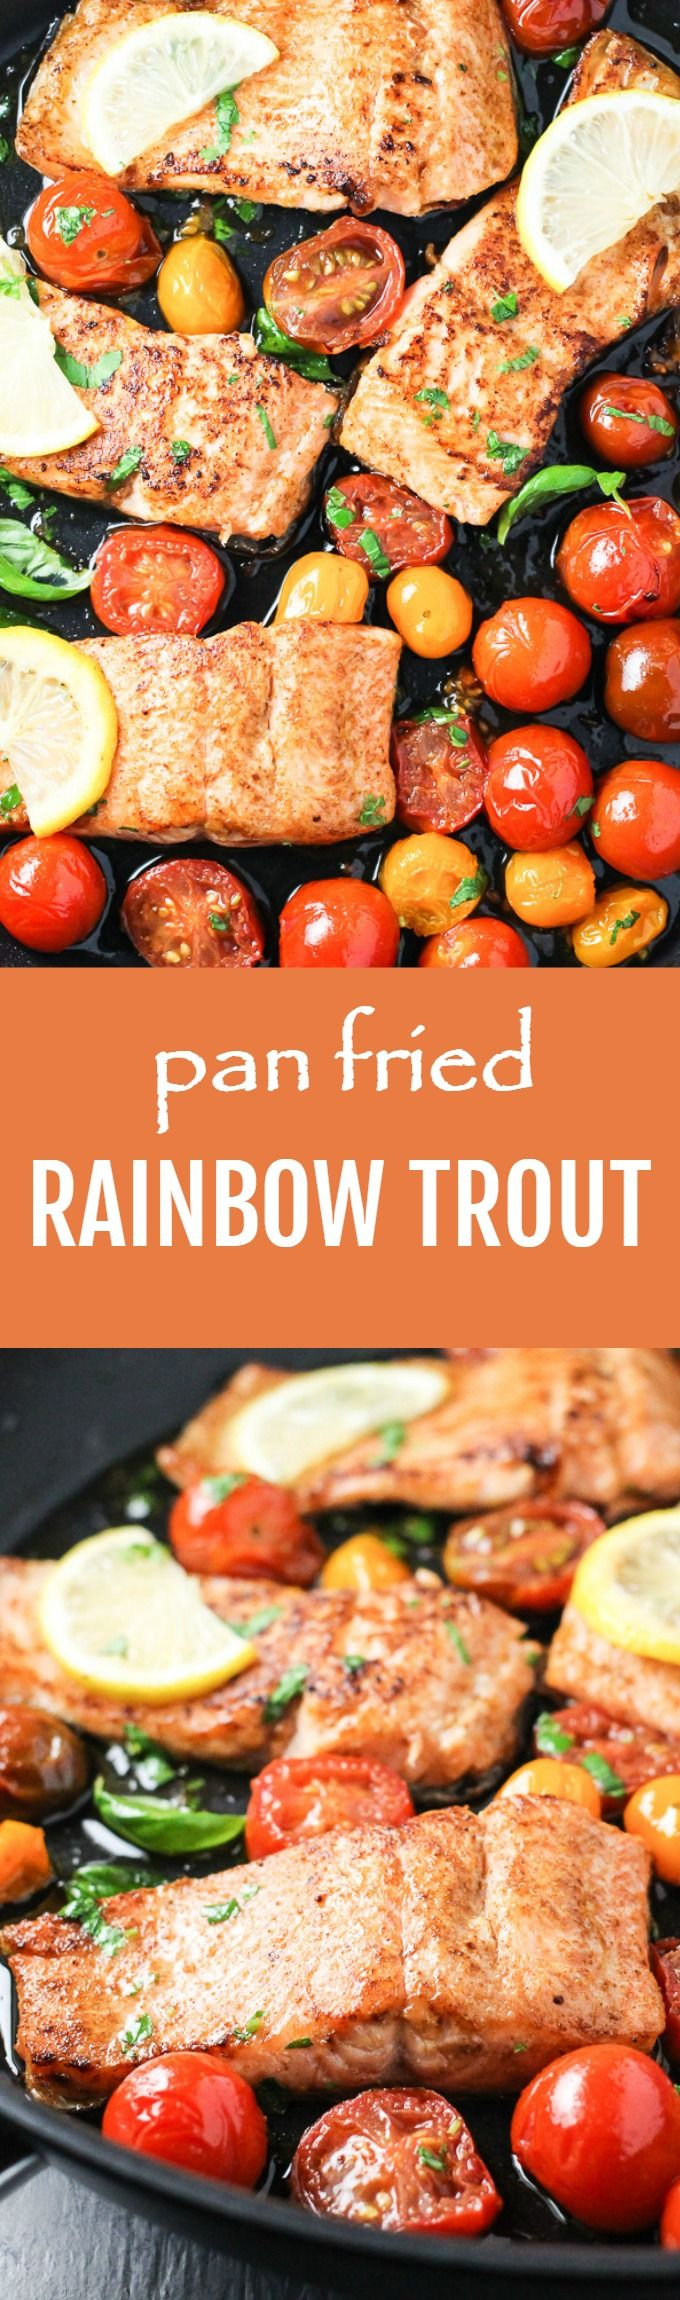 This quick and easy pan fried rainbow trout can be served with almost any side dish. It's also perfect as a healthy one-pan dinner and the leftovers taste great too. Ready in 10 minutes.